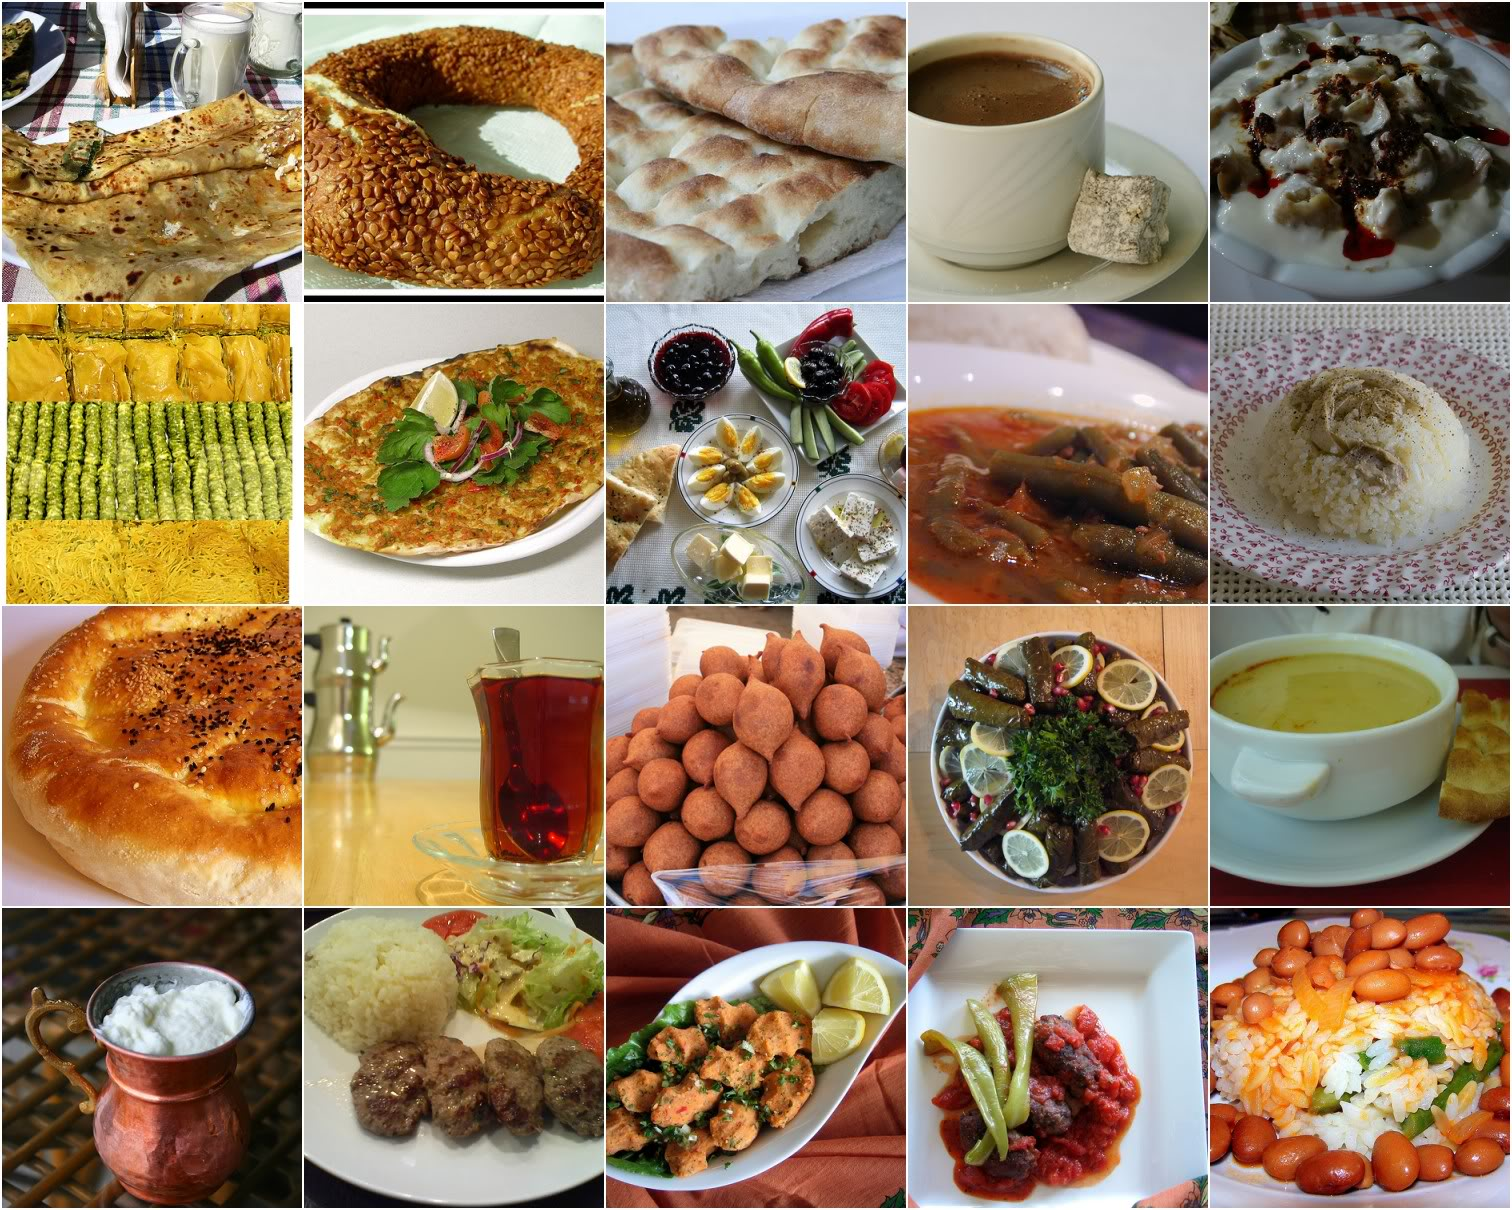 Discover Turkish Cuisine through the culinary experiences of Vanguard Travel Services